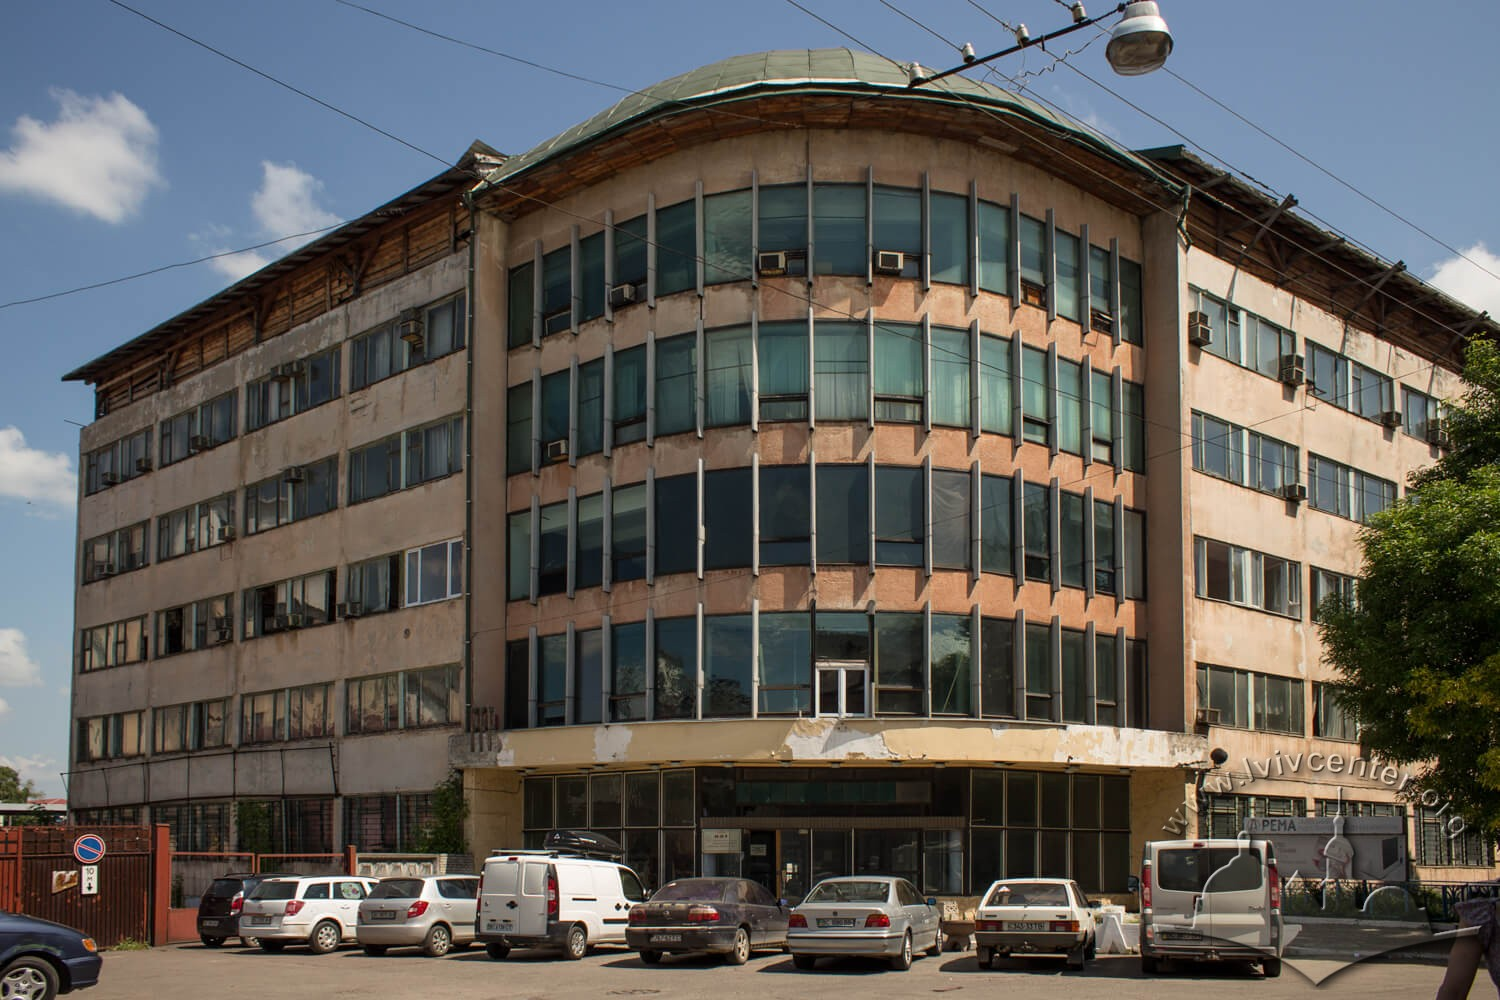 Vul. Zavodska. Before the construction of this REMA plant building, there used to be a few smaller buildings, the Kuznicki roofing felt factory was located in one of them (#33)/Photo courtesy of Olha Zarechnyuk, 2016